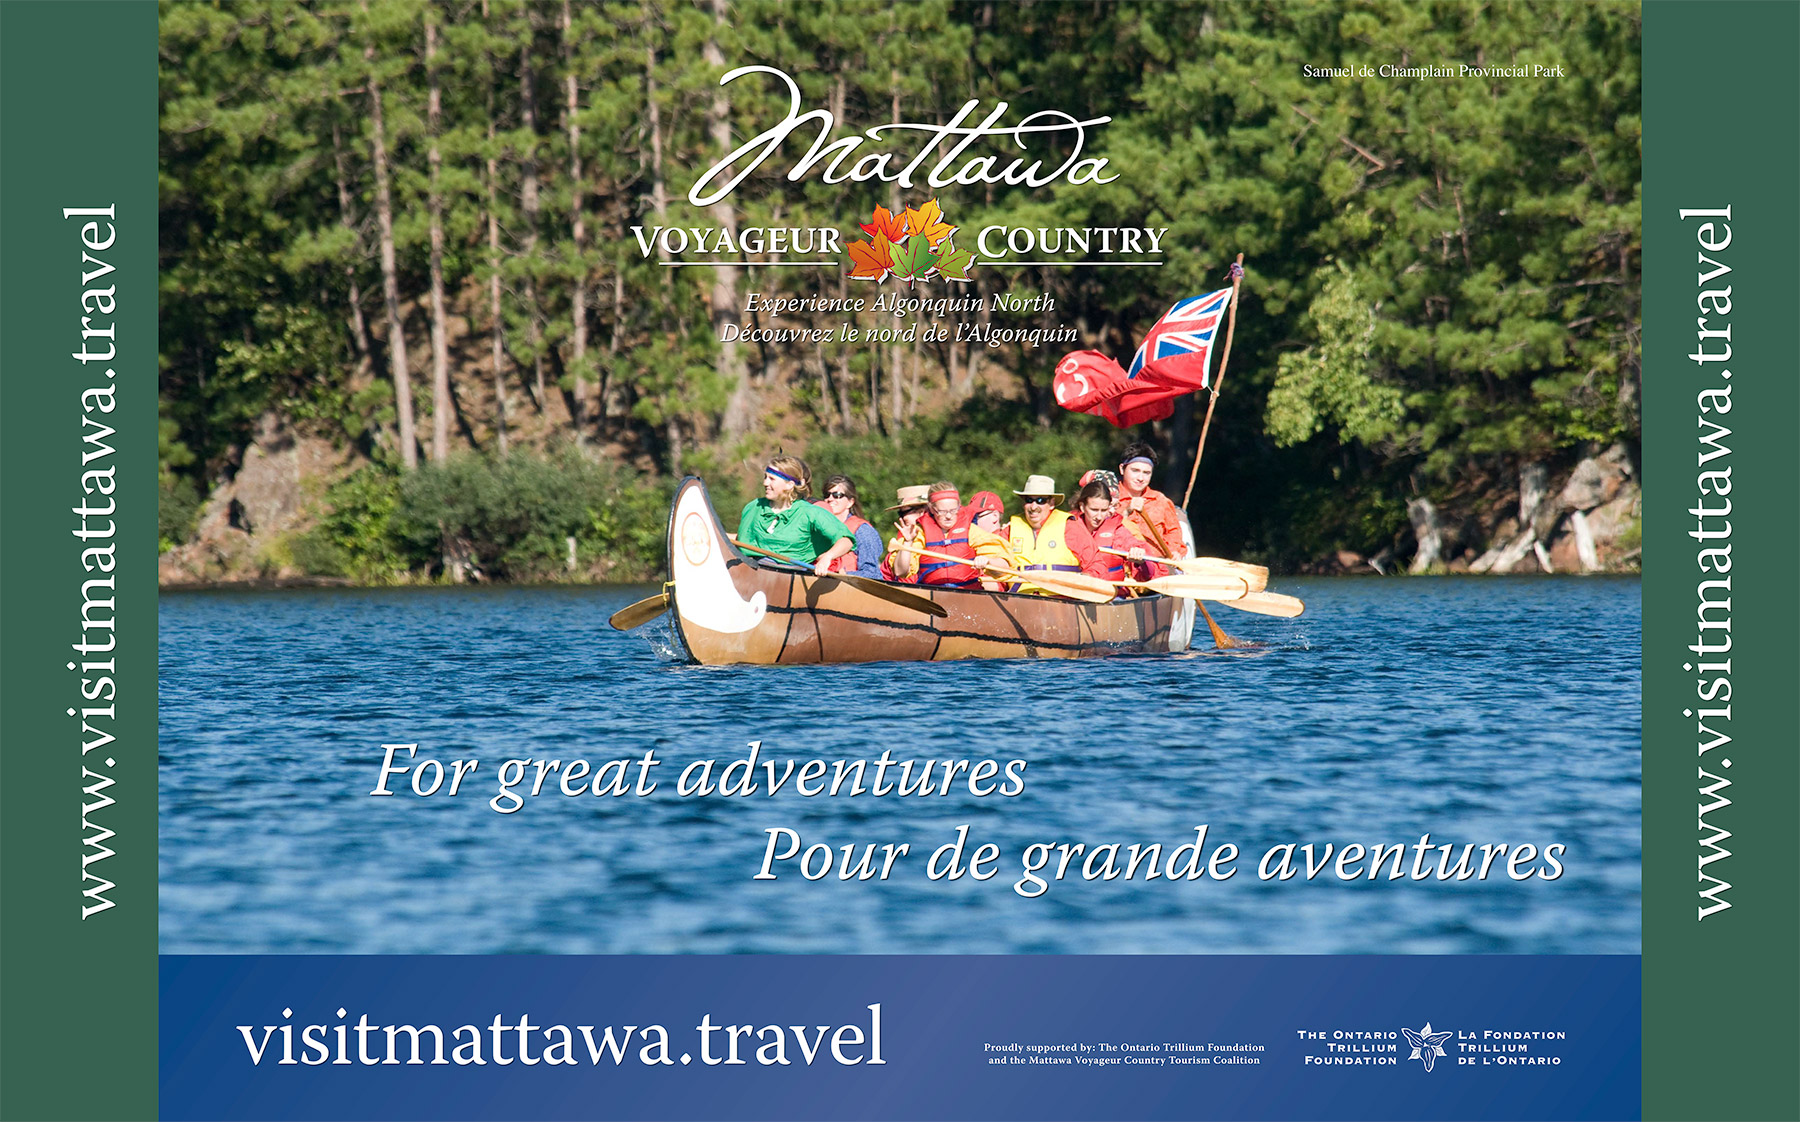 Mattawa Tourism fabric wall